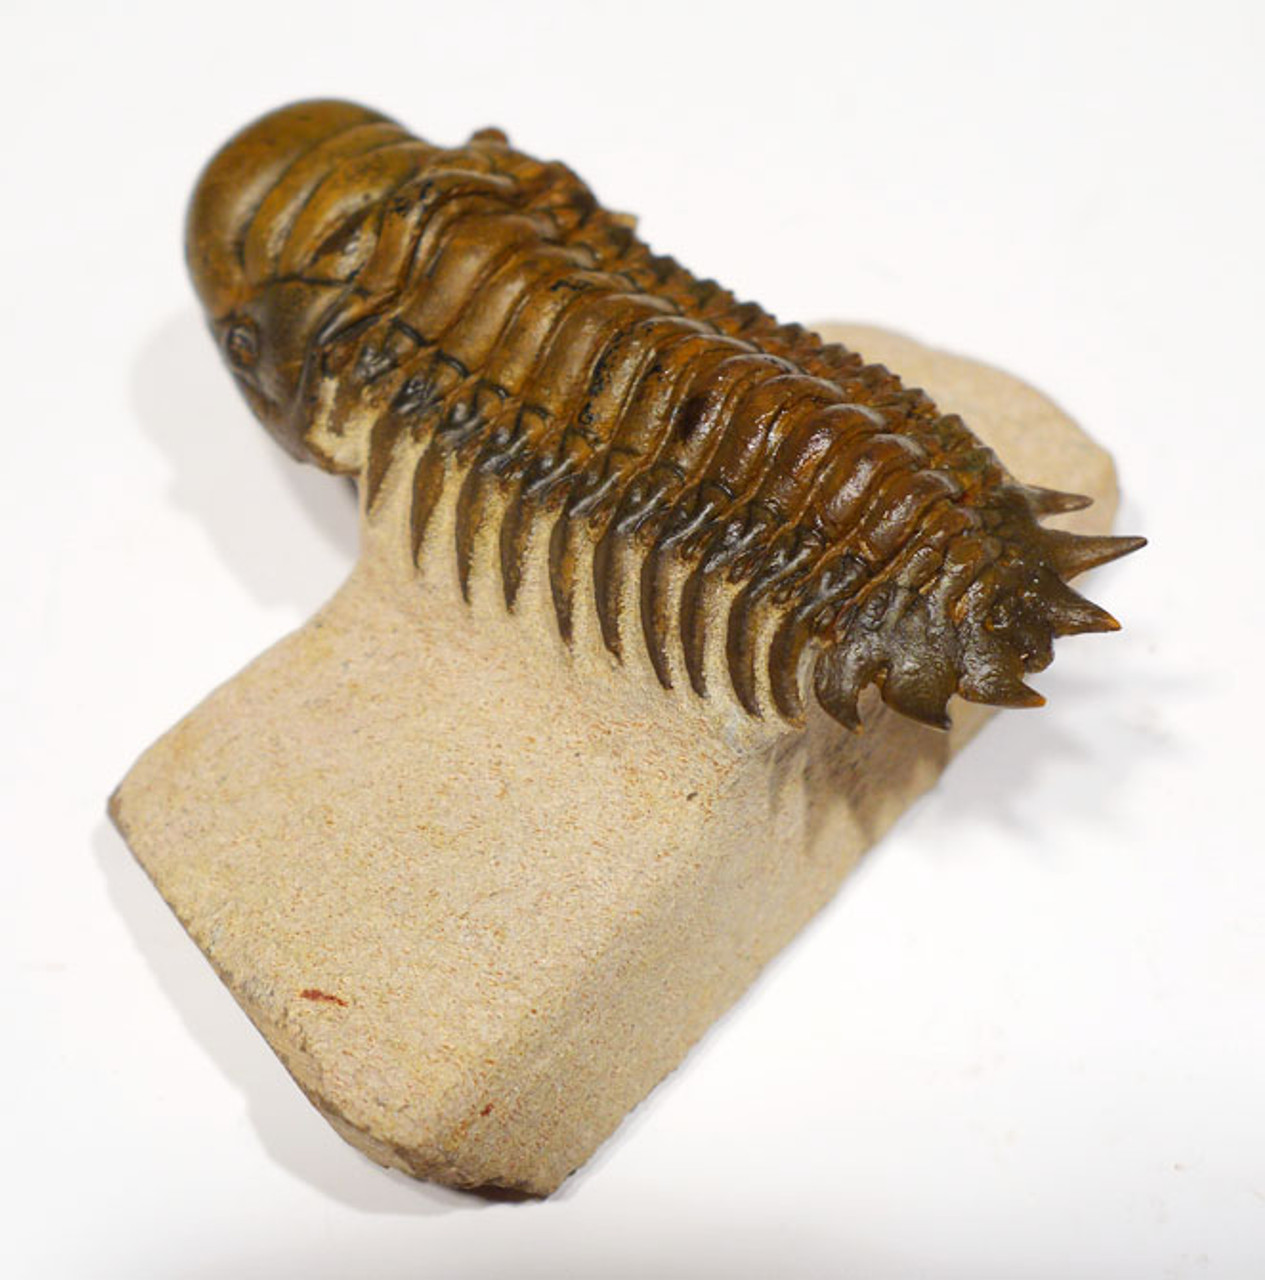 TRX351 - DARK GOLD CHEIRURUS CROTALOCEPHALUS TRILOBITE WITH EXPOSED MOUTH PARTS AND FREE-STANDING TAIL SPINES